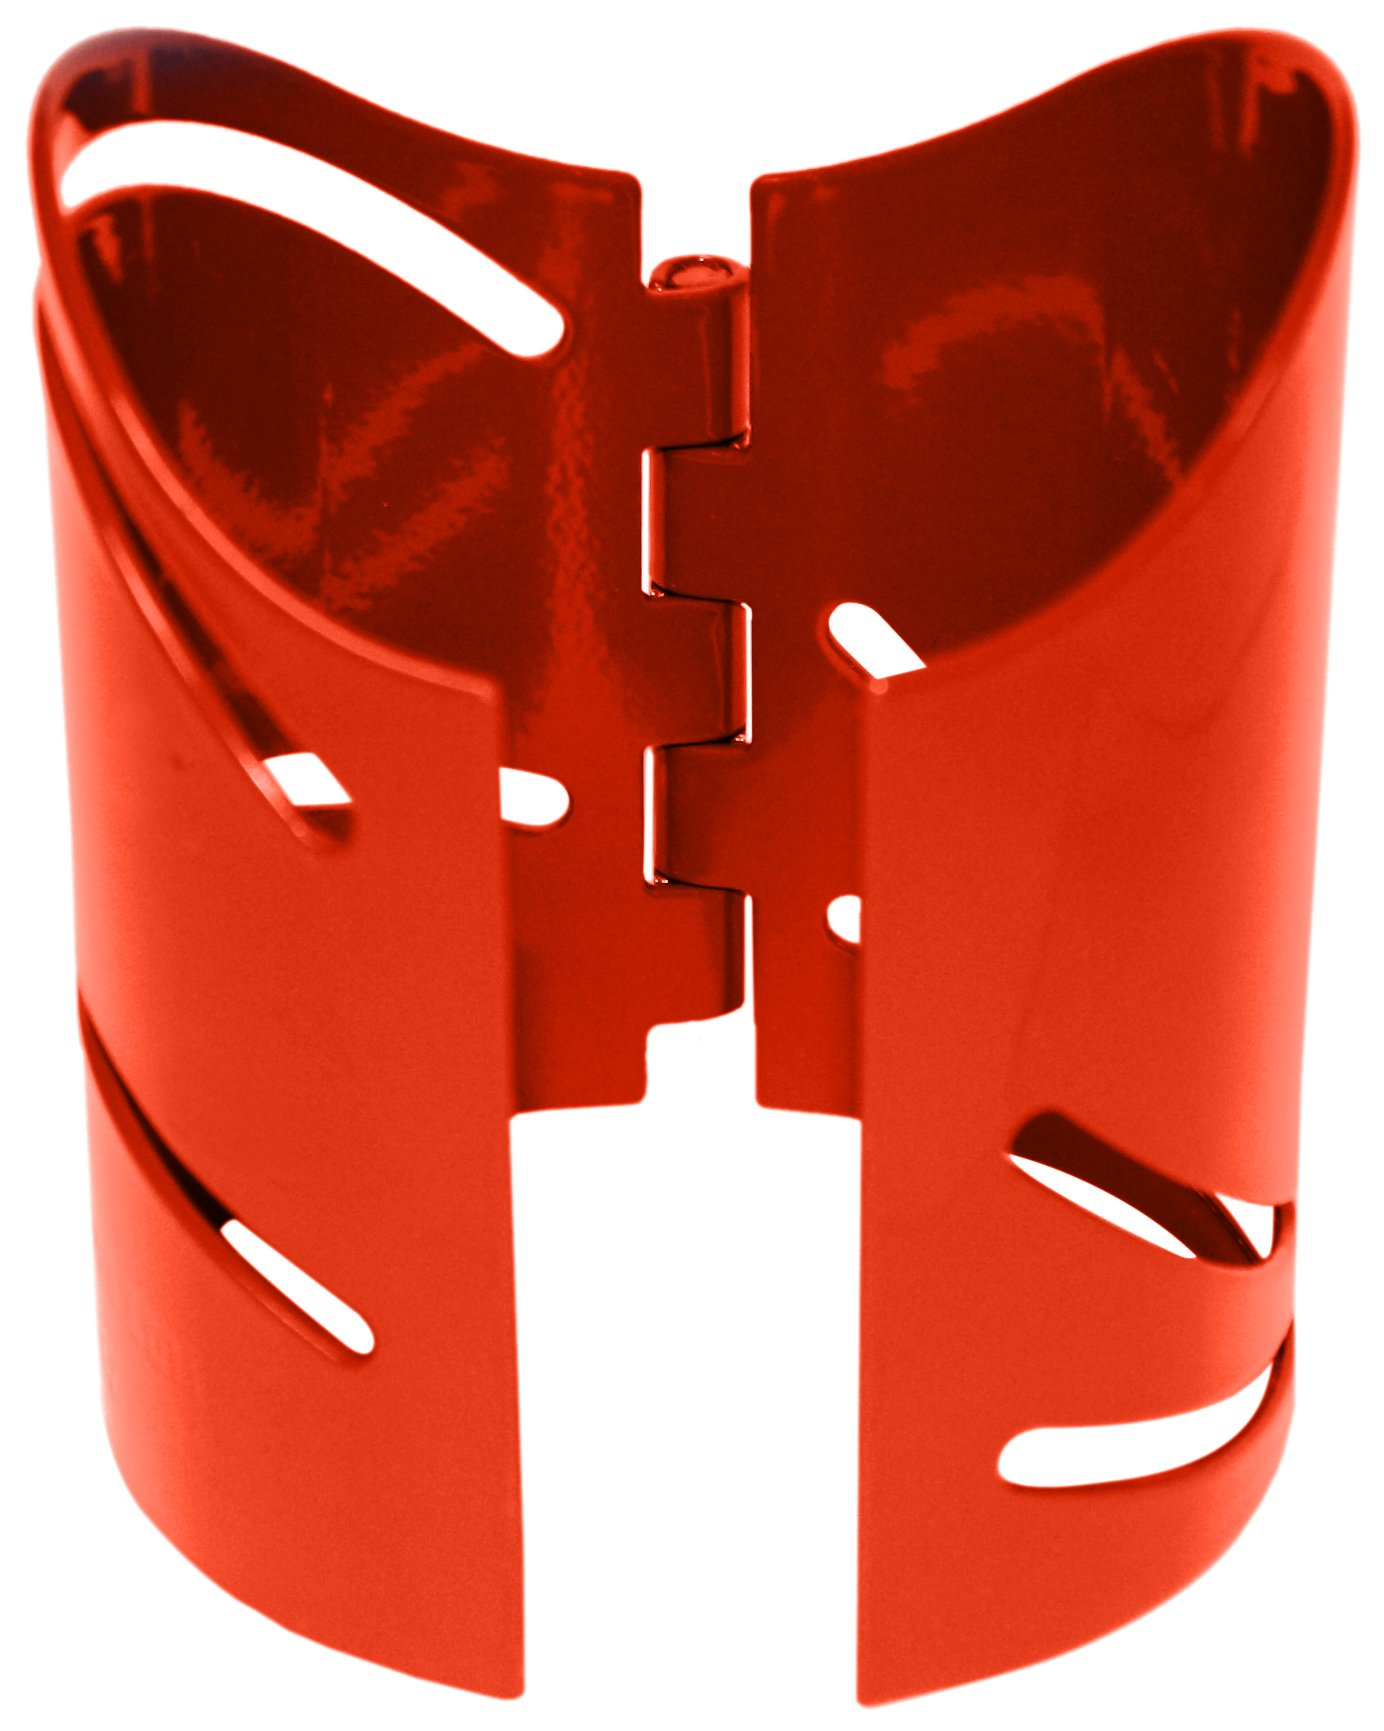 Pipe Pro Metal Cutting Guide - 2-3/8'' - Red